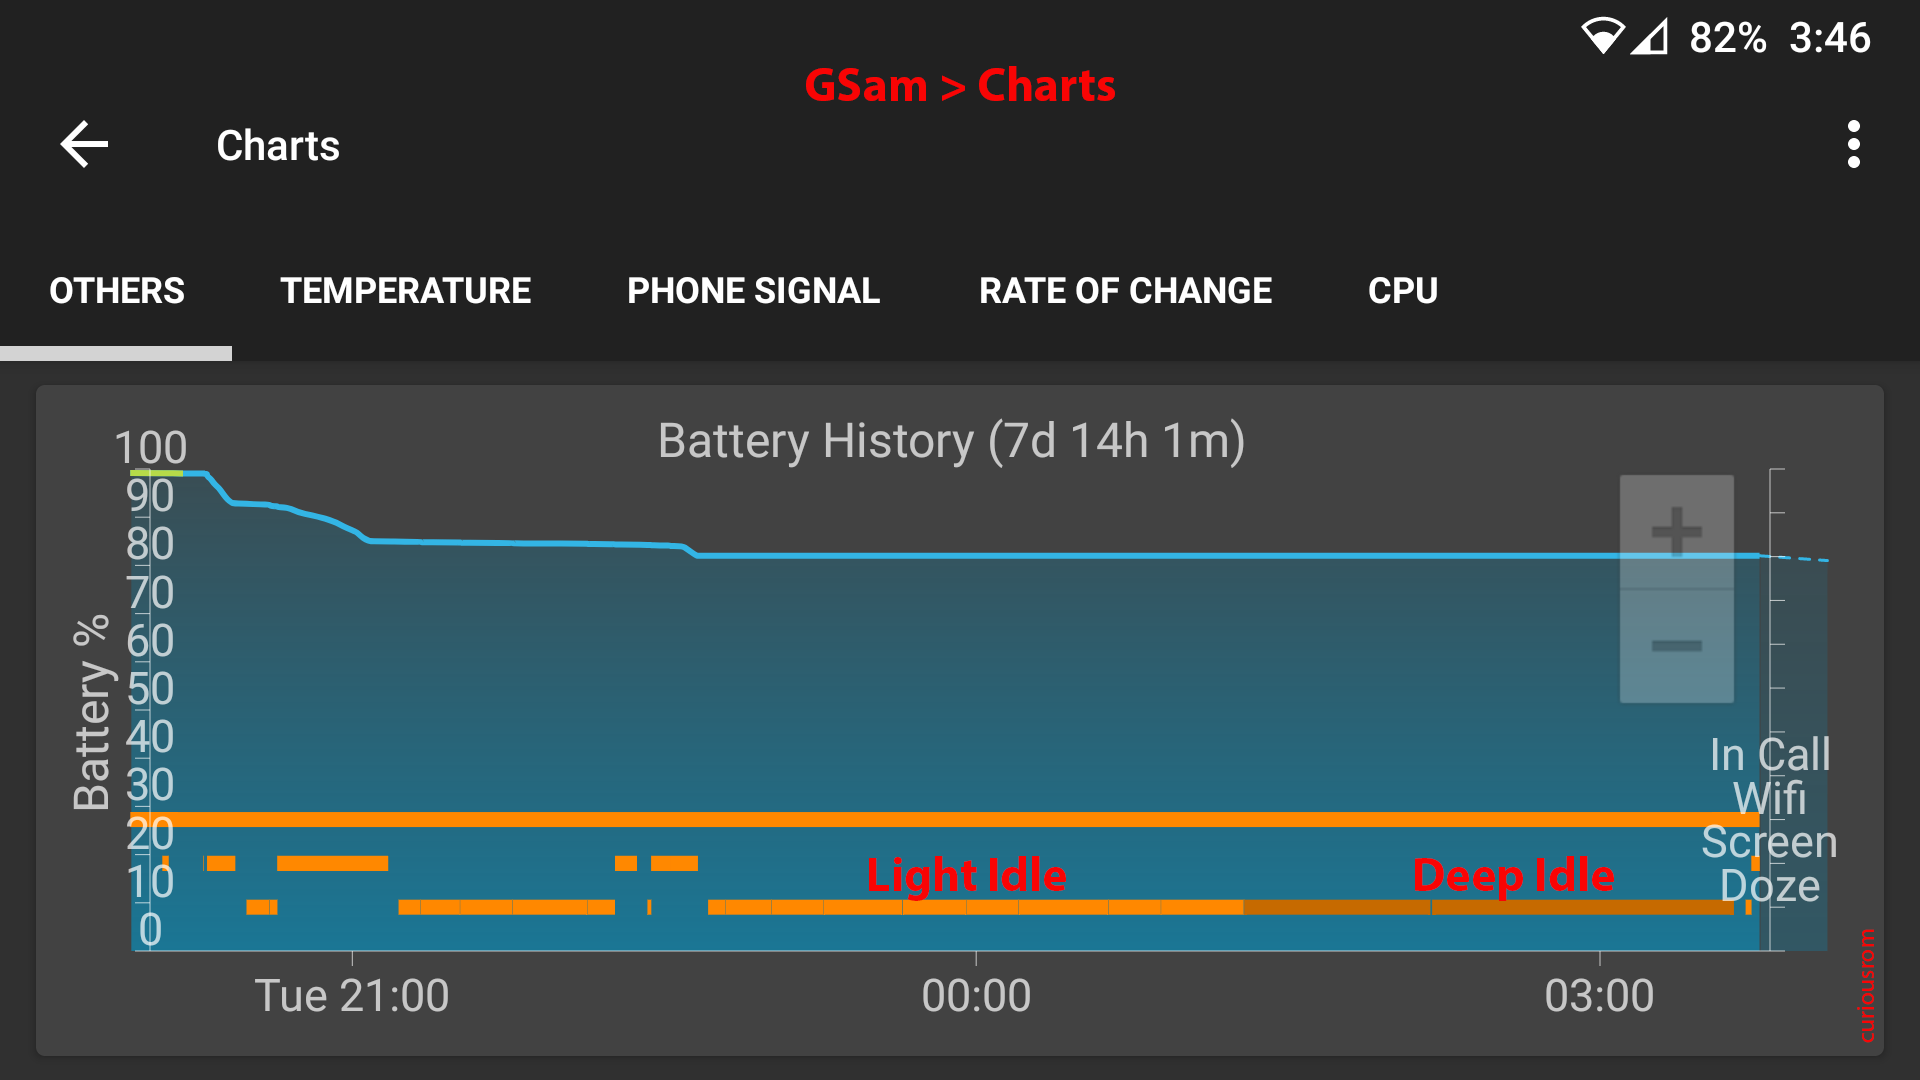 GSam_0_Discharge_Battery_Charts_5h_LineageOS_18-1_S5_curiousrom.png